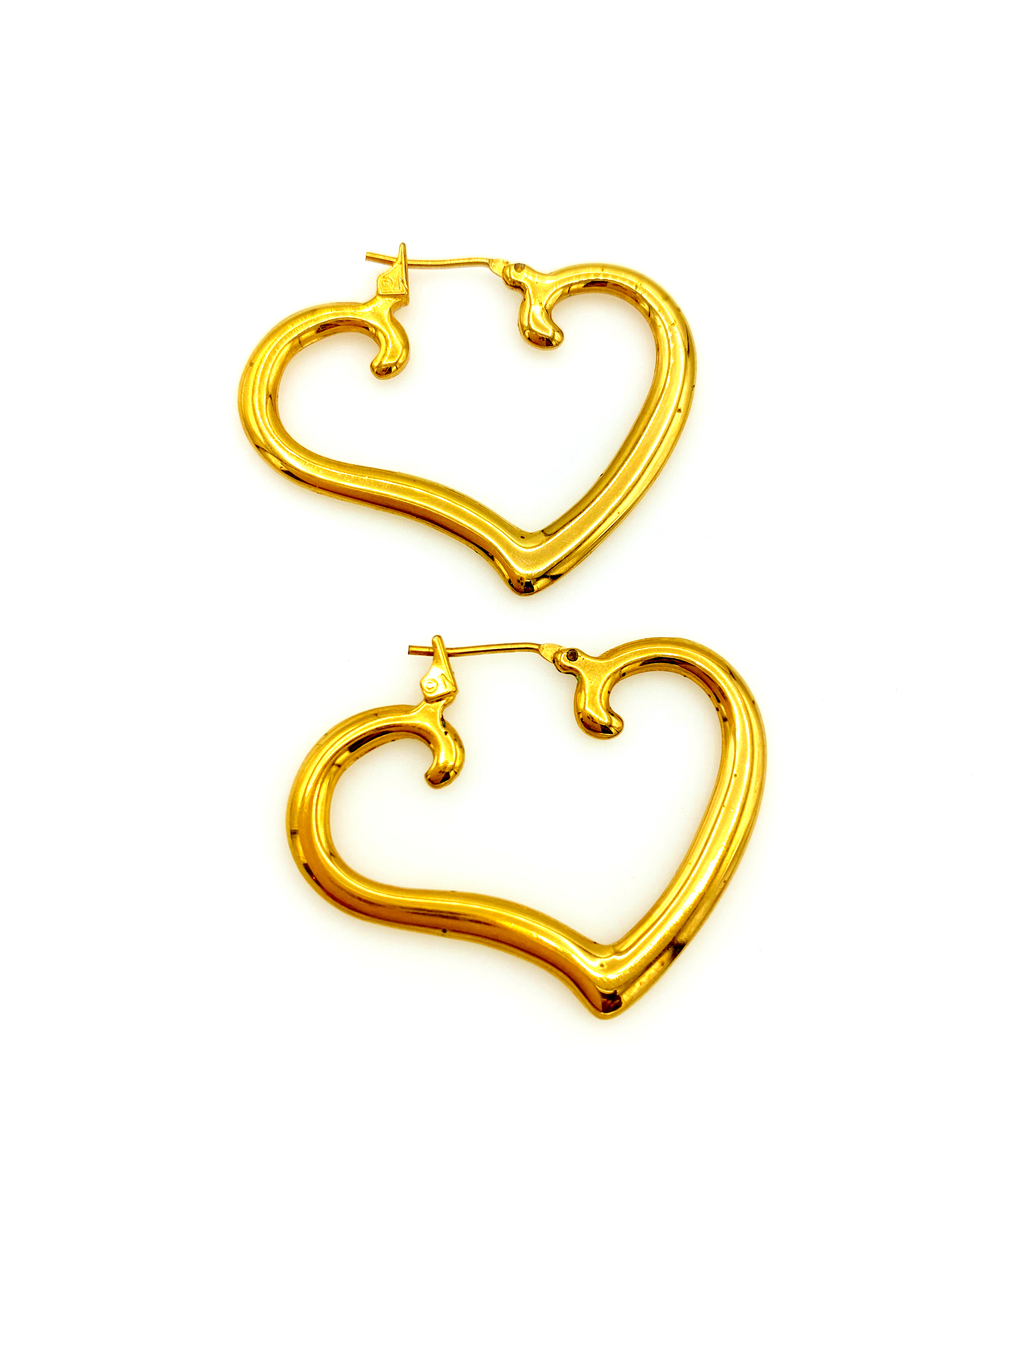 Everyday Gold Heart Hoop Vintage Pierced Earrings-Sustainable Fashion with Vintage Style-Trending Designer Fashion-24 Wishes